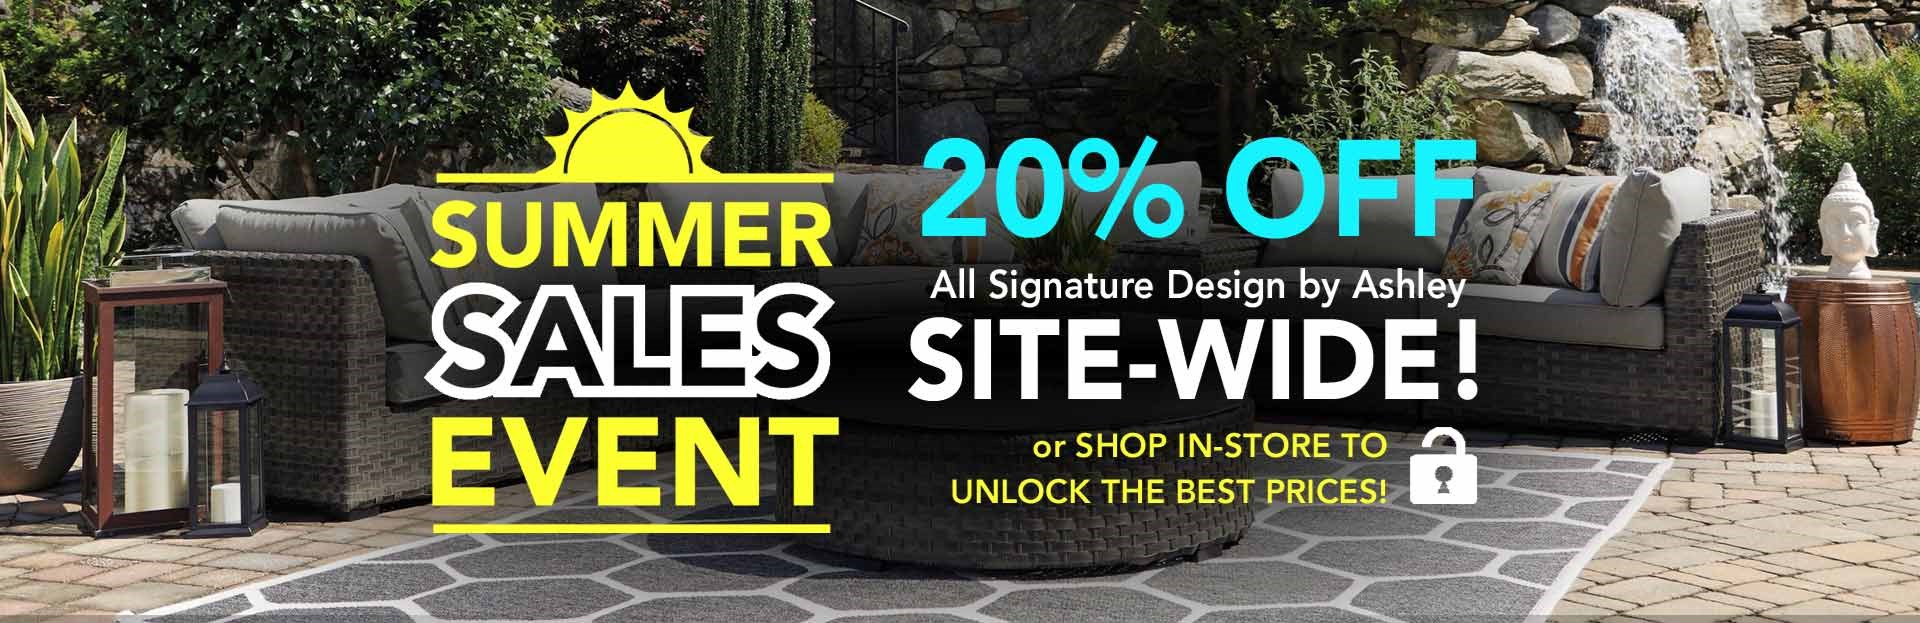 Summer Sales Event 20% off Ashley